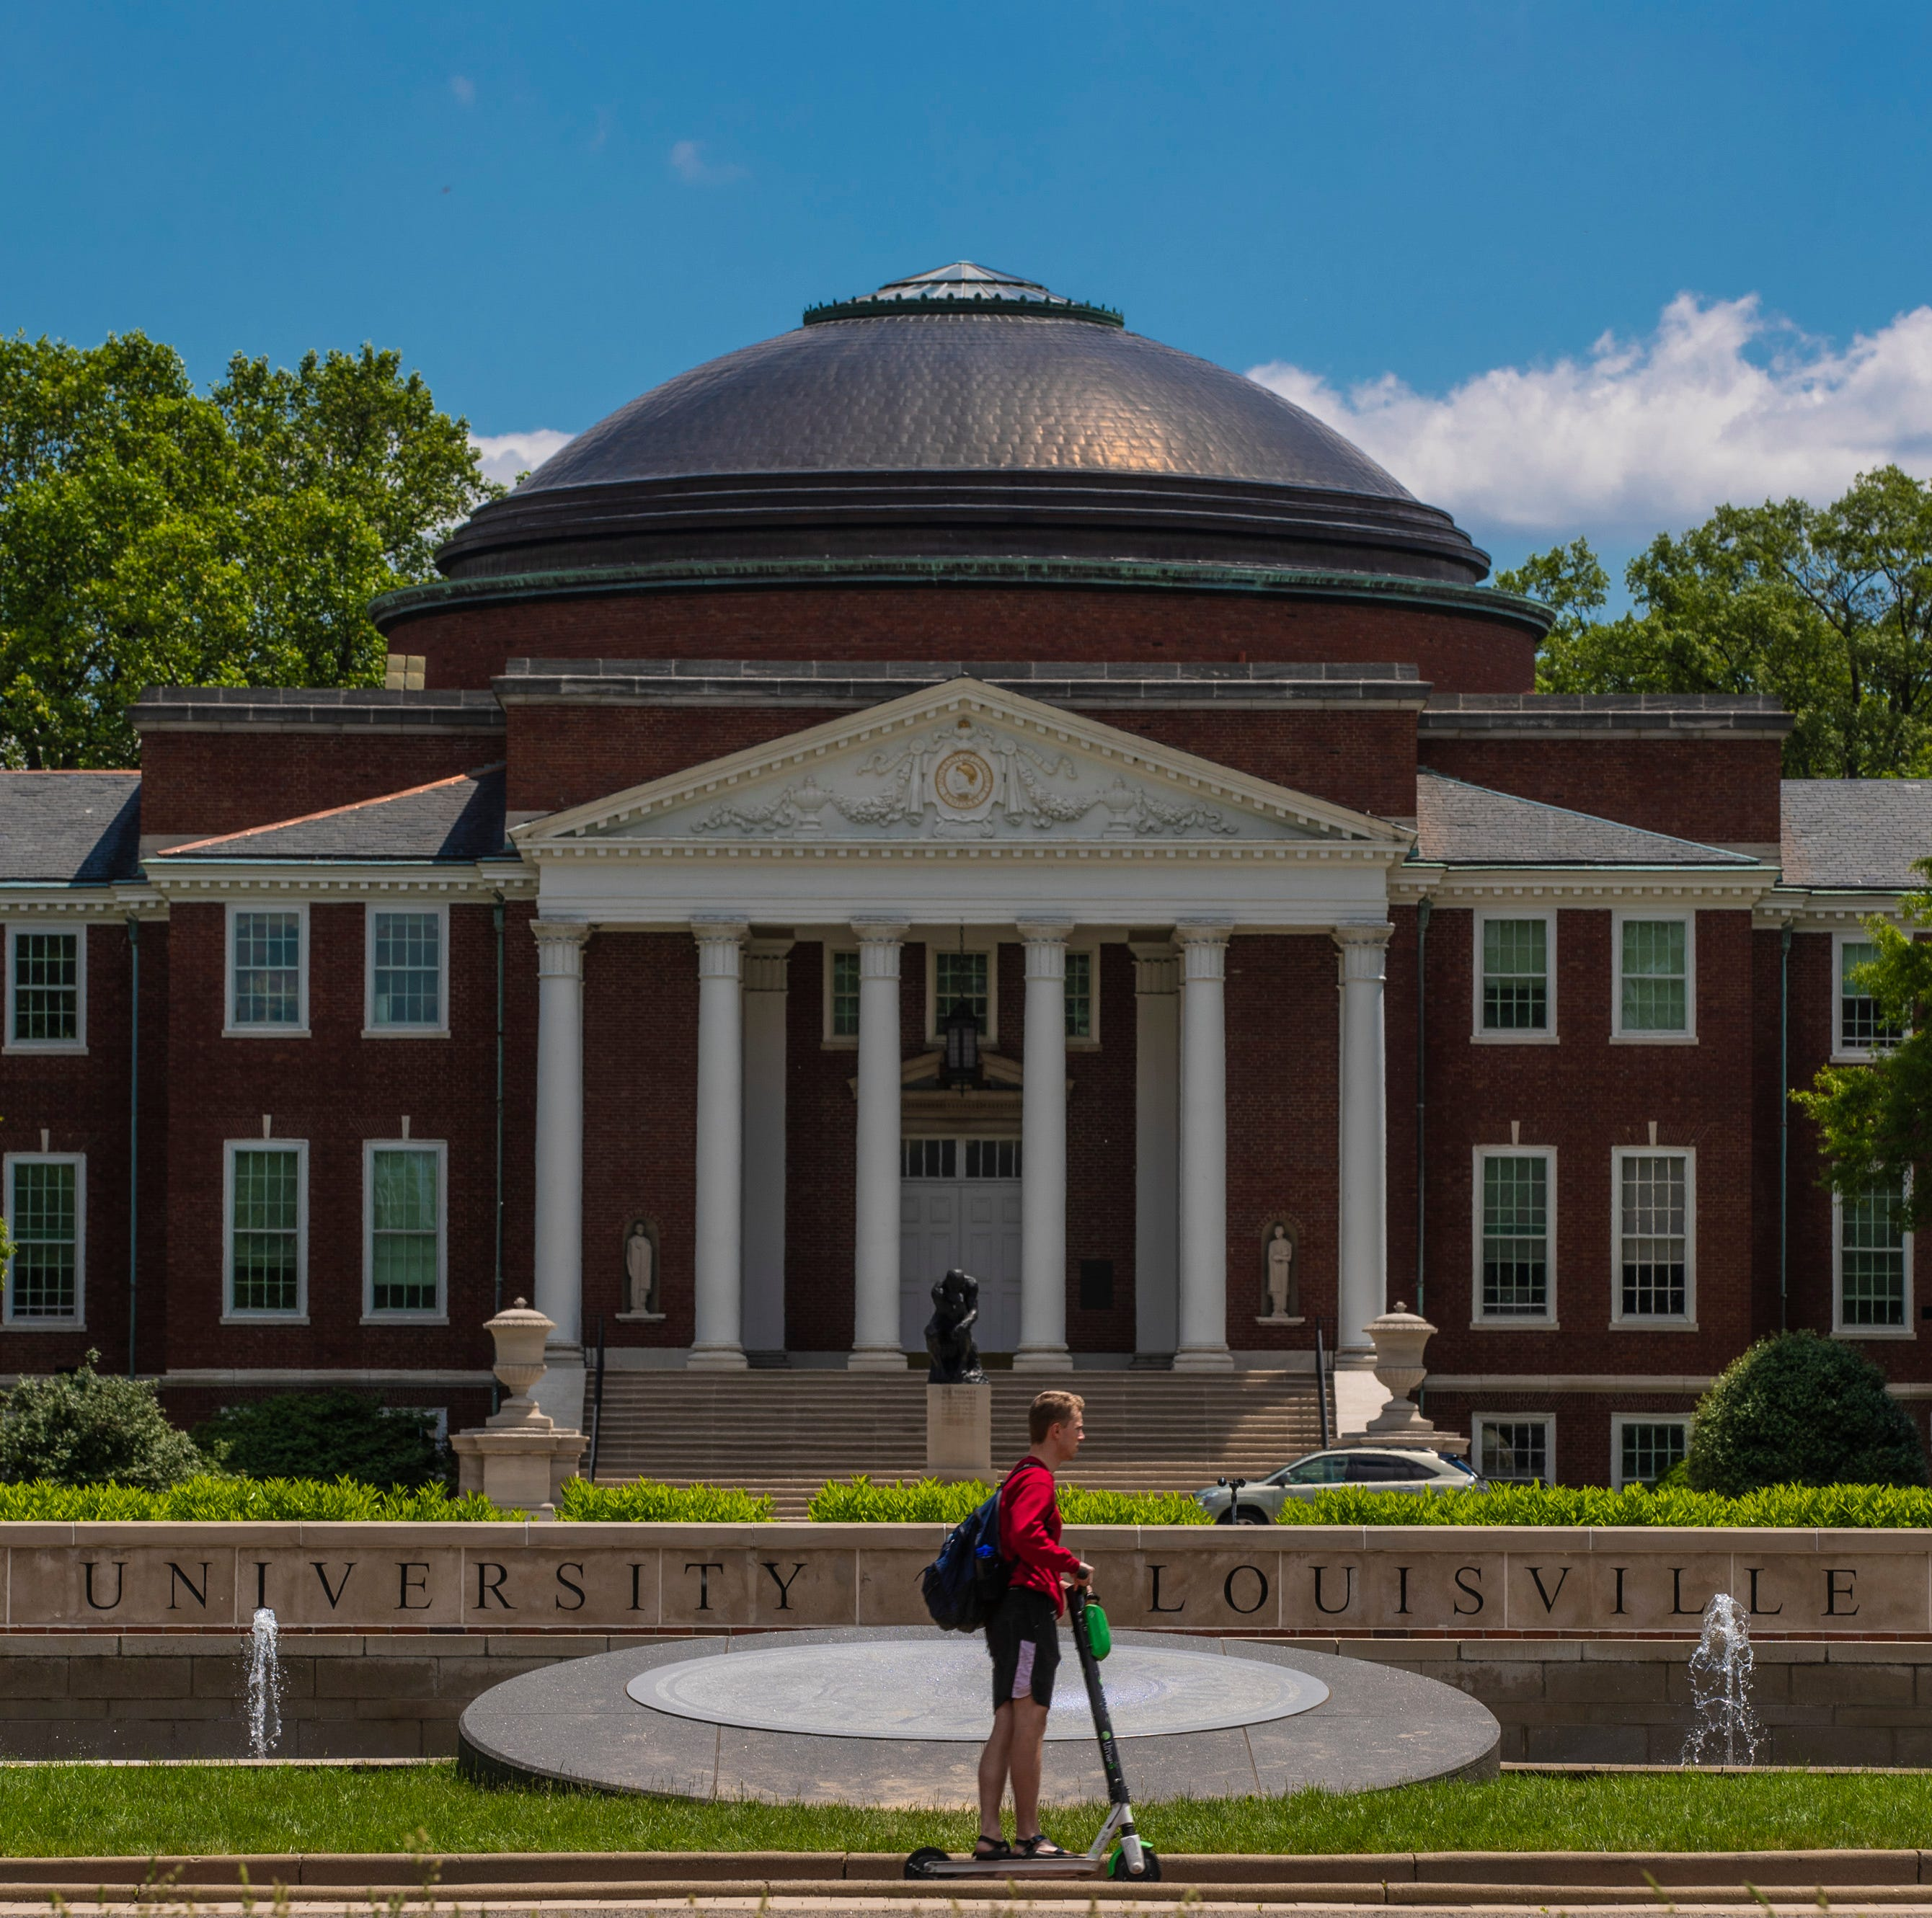 A student rides a Bird scooter past Grawemeyer Hall Tuesday on the University of Louisville campus. May 14, 2019